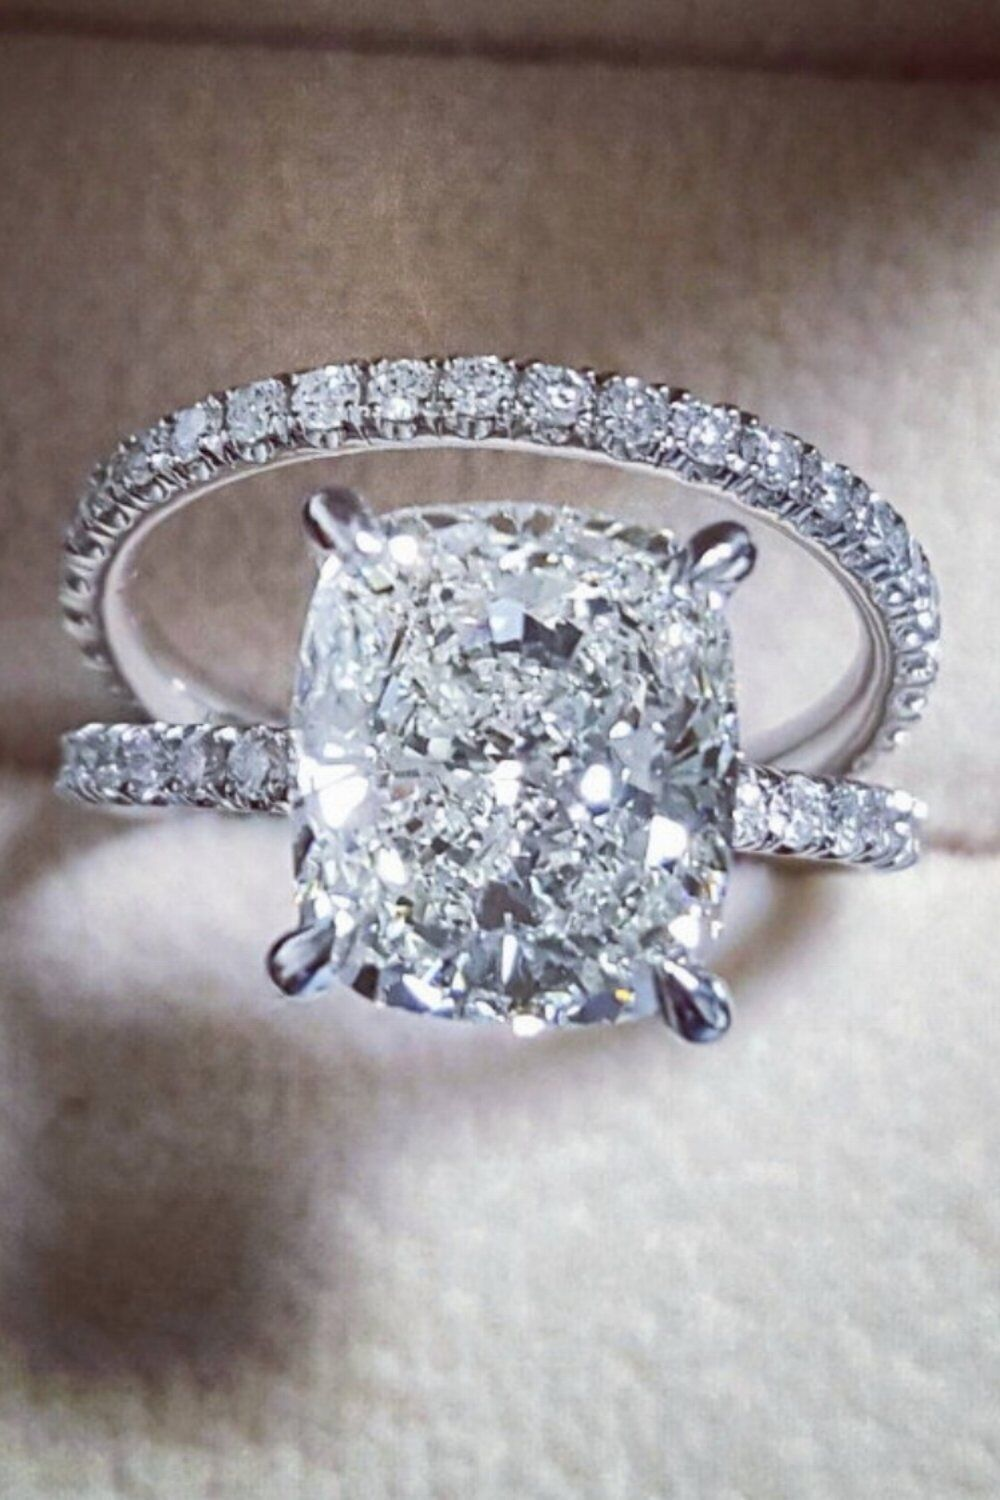 3.00 Ct Cushion Cut Diamond Engagement Ring Set Round Accents H,VS1 GIA 14K WG  6